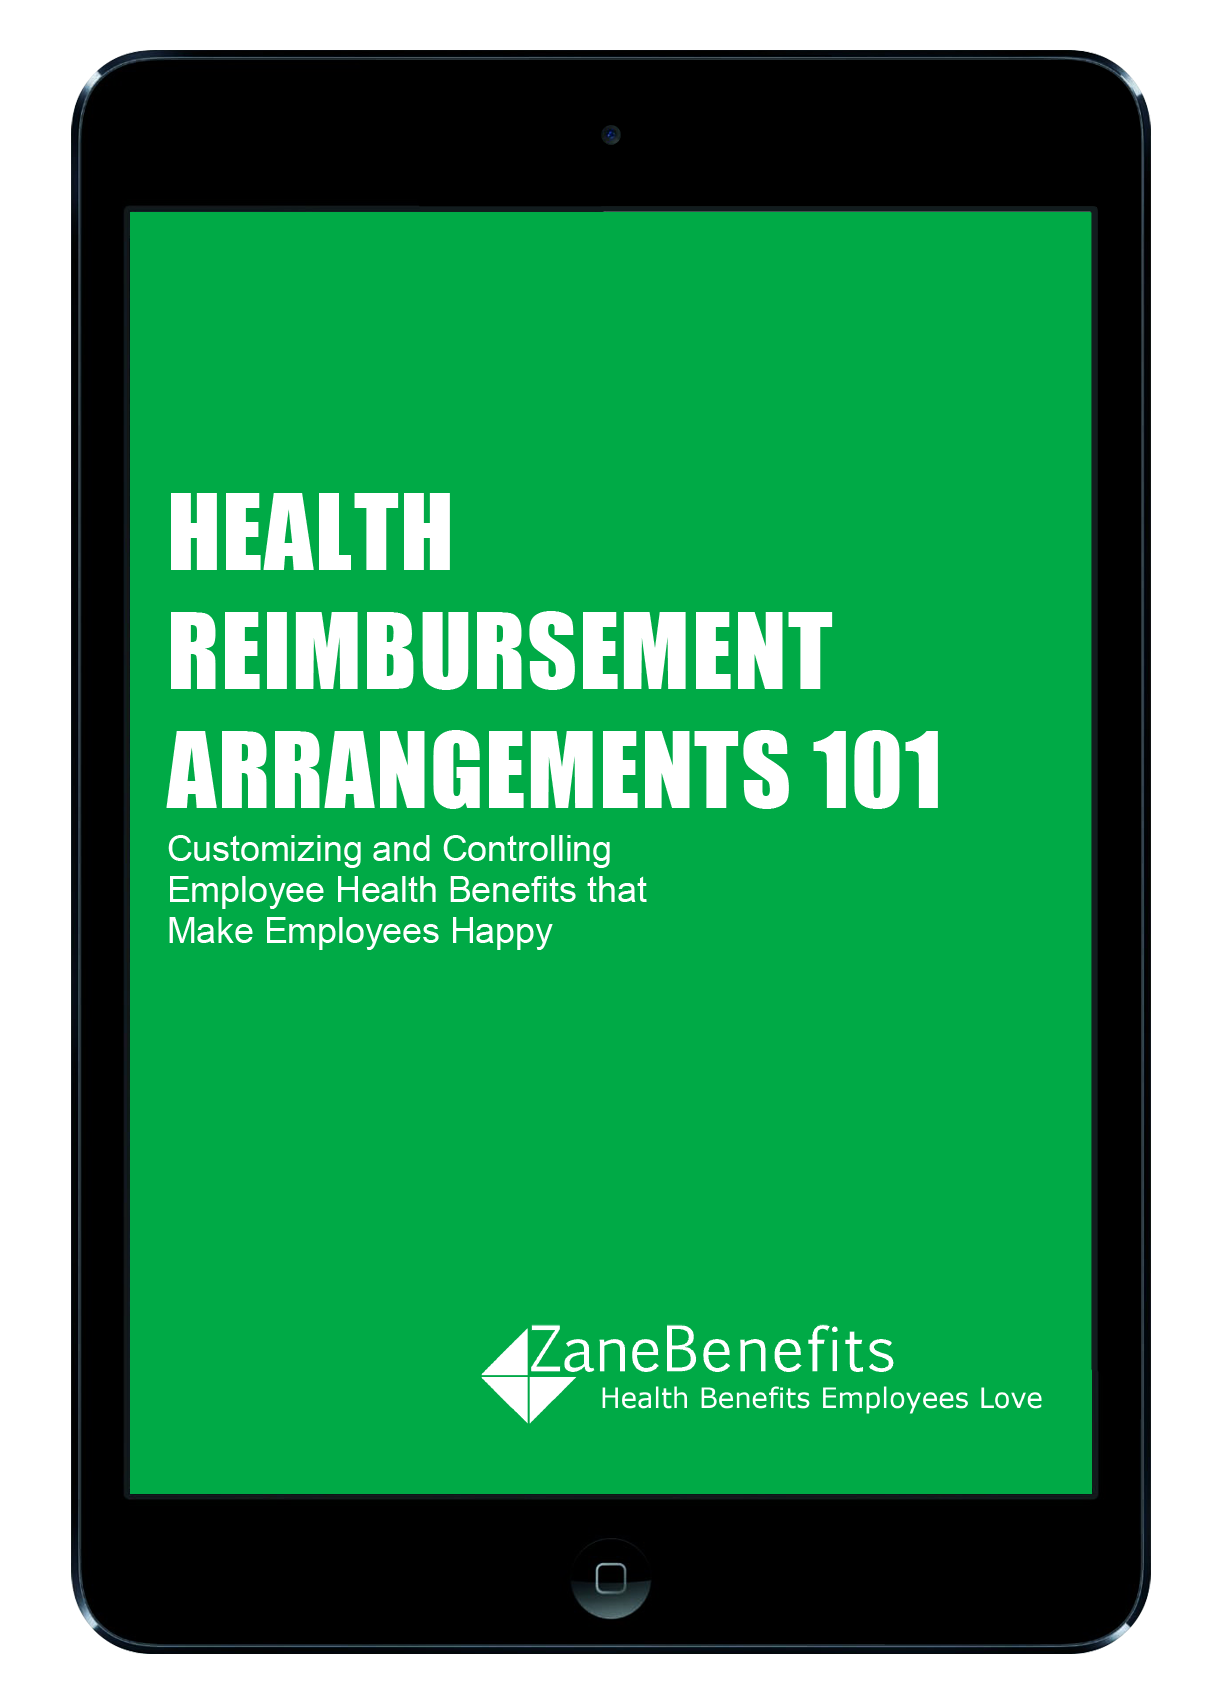 Health Reimbursement Arrangements (HRA) 101